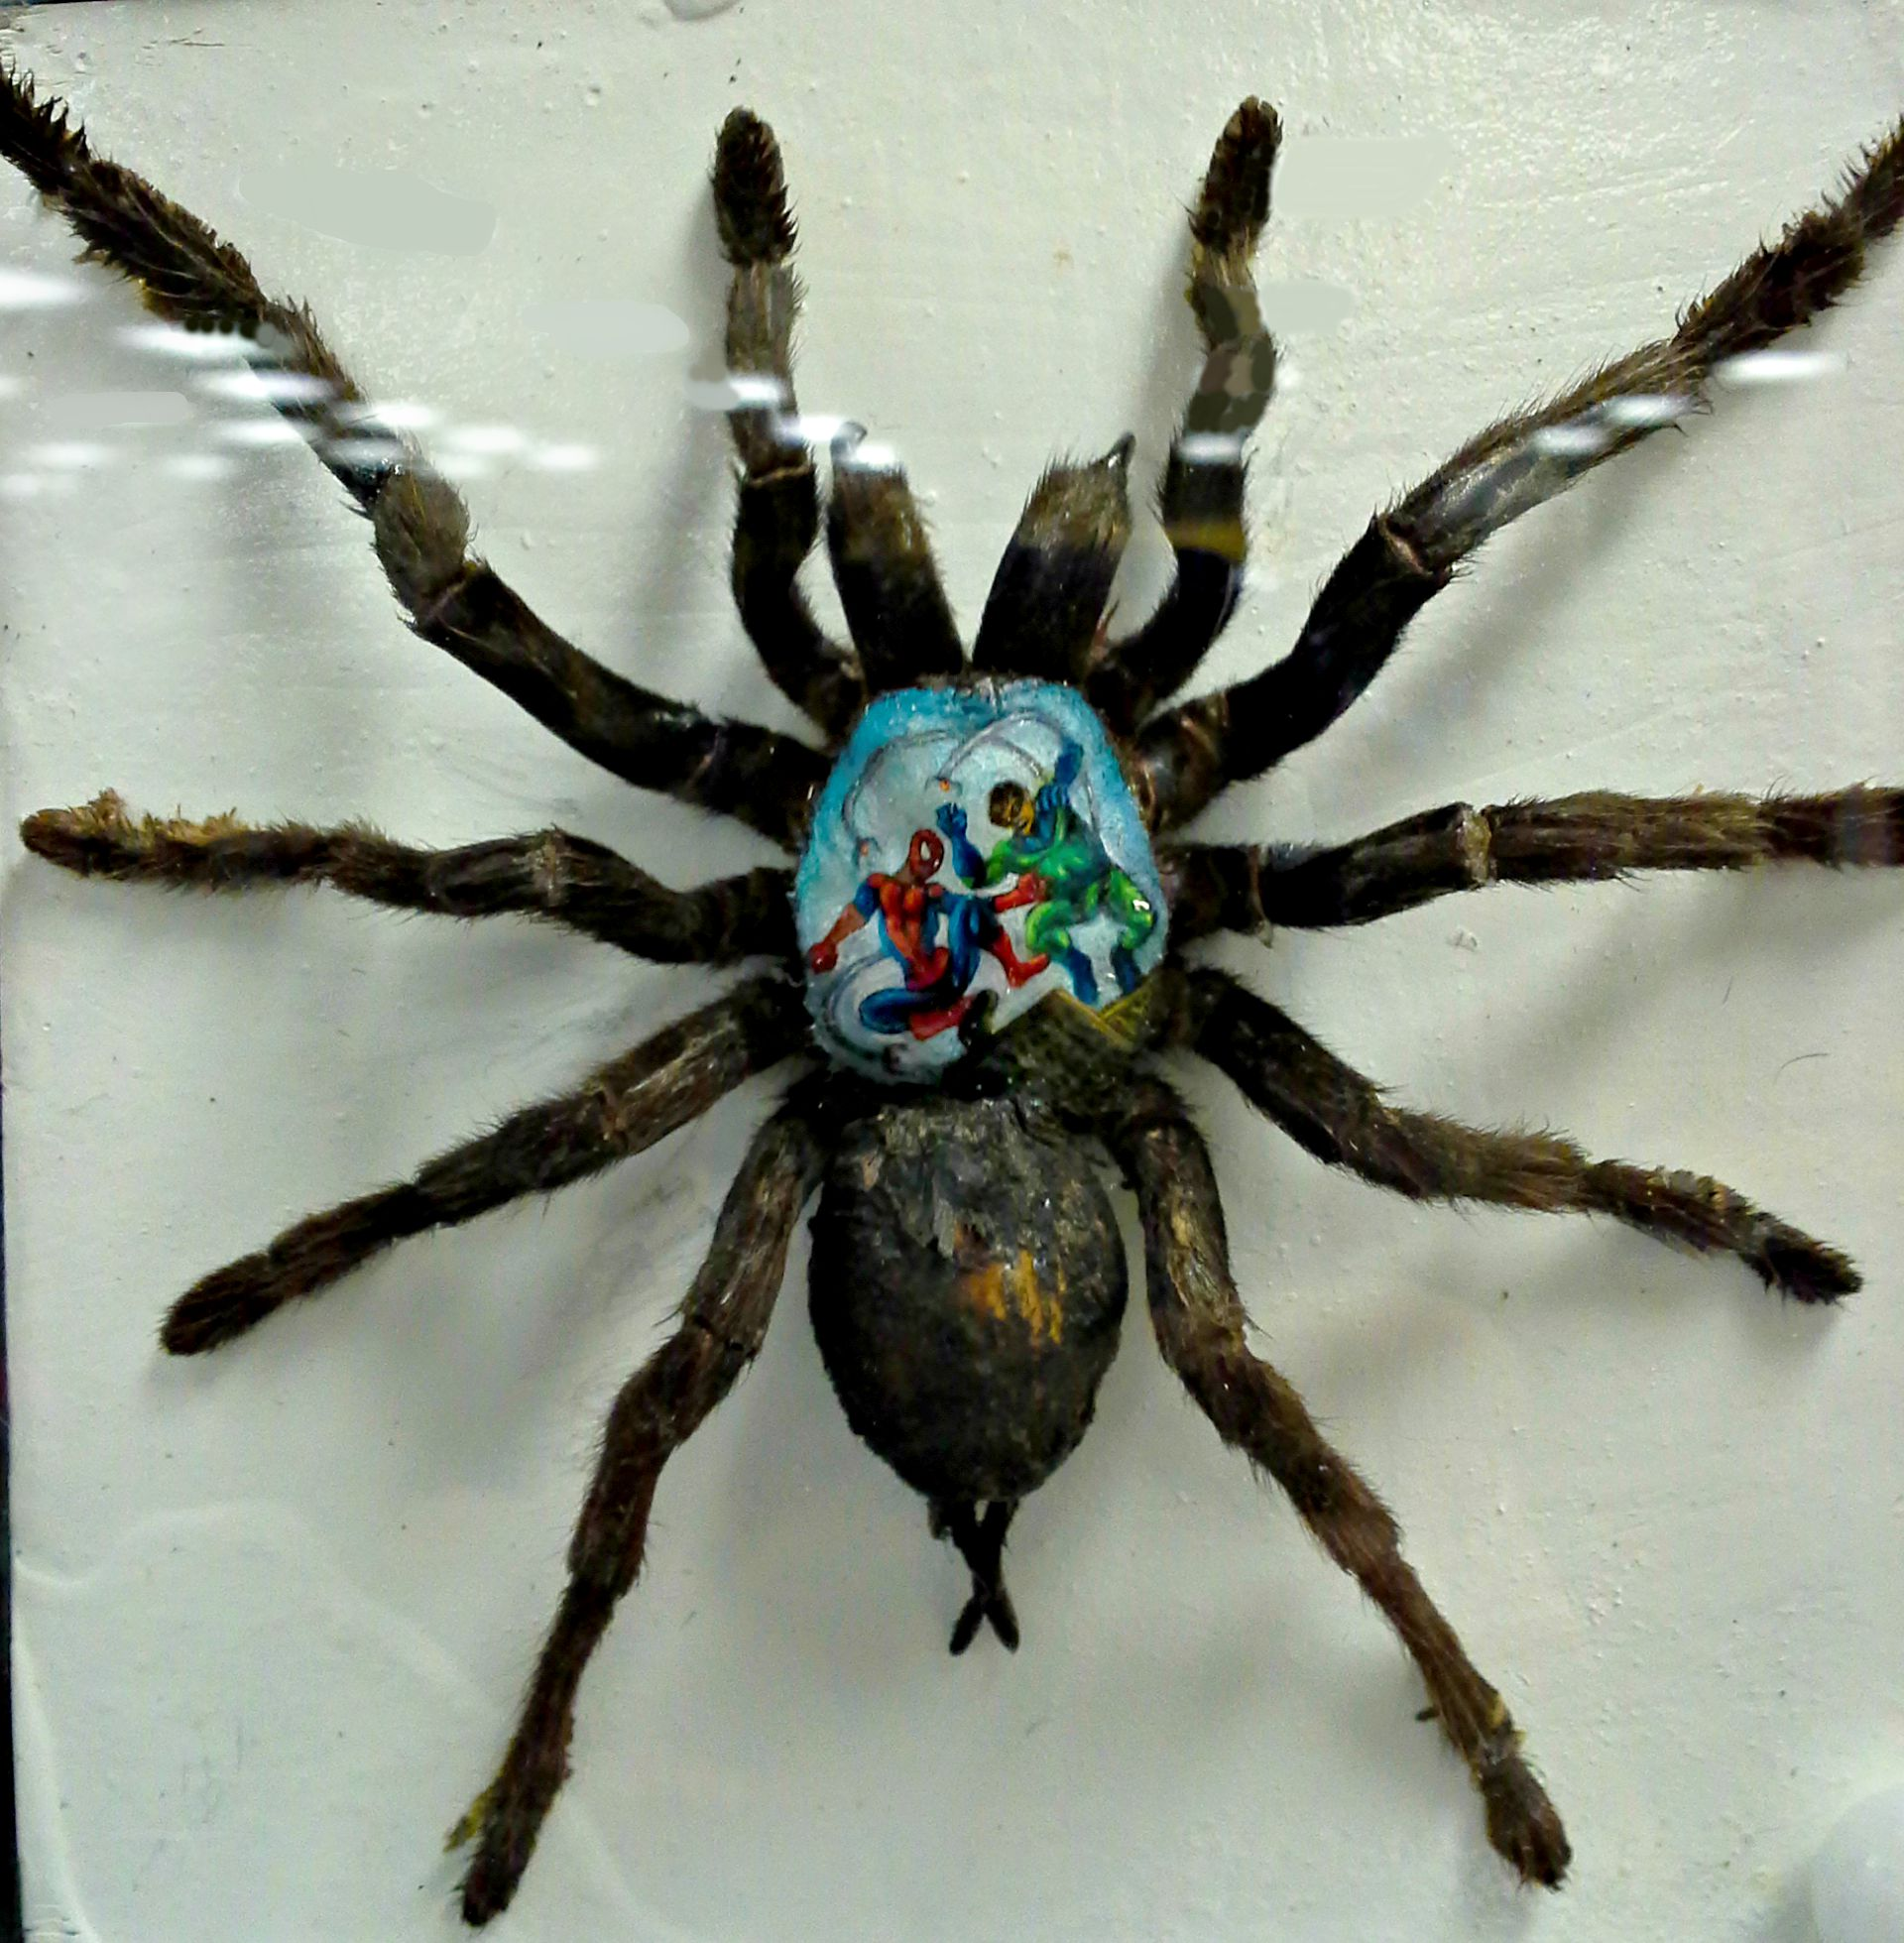 Spiderman scene painted on a tarantual. Believe it or not. #it'sreal #freakystuff #geekery